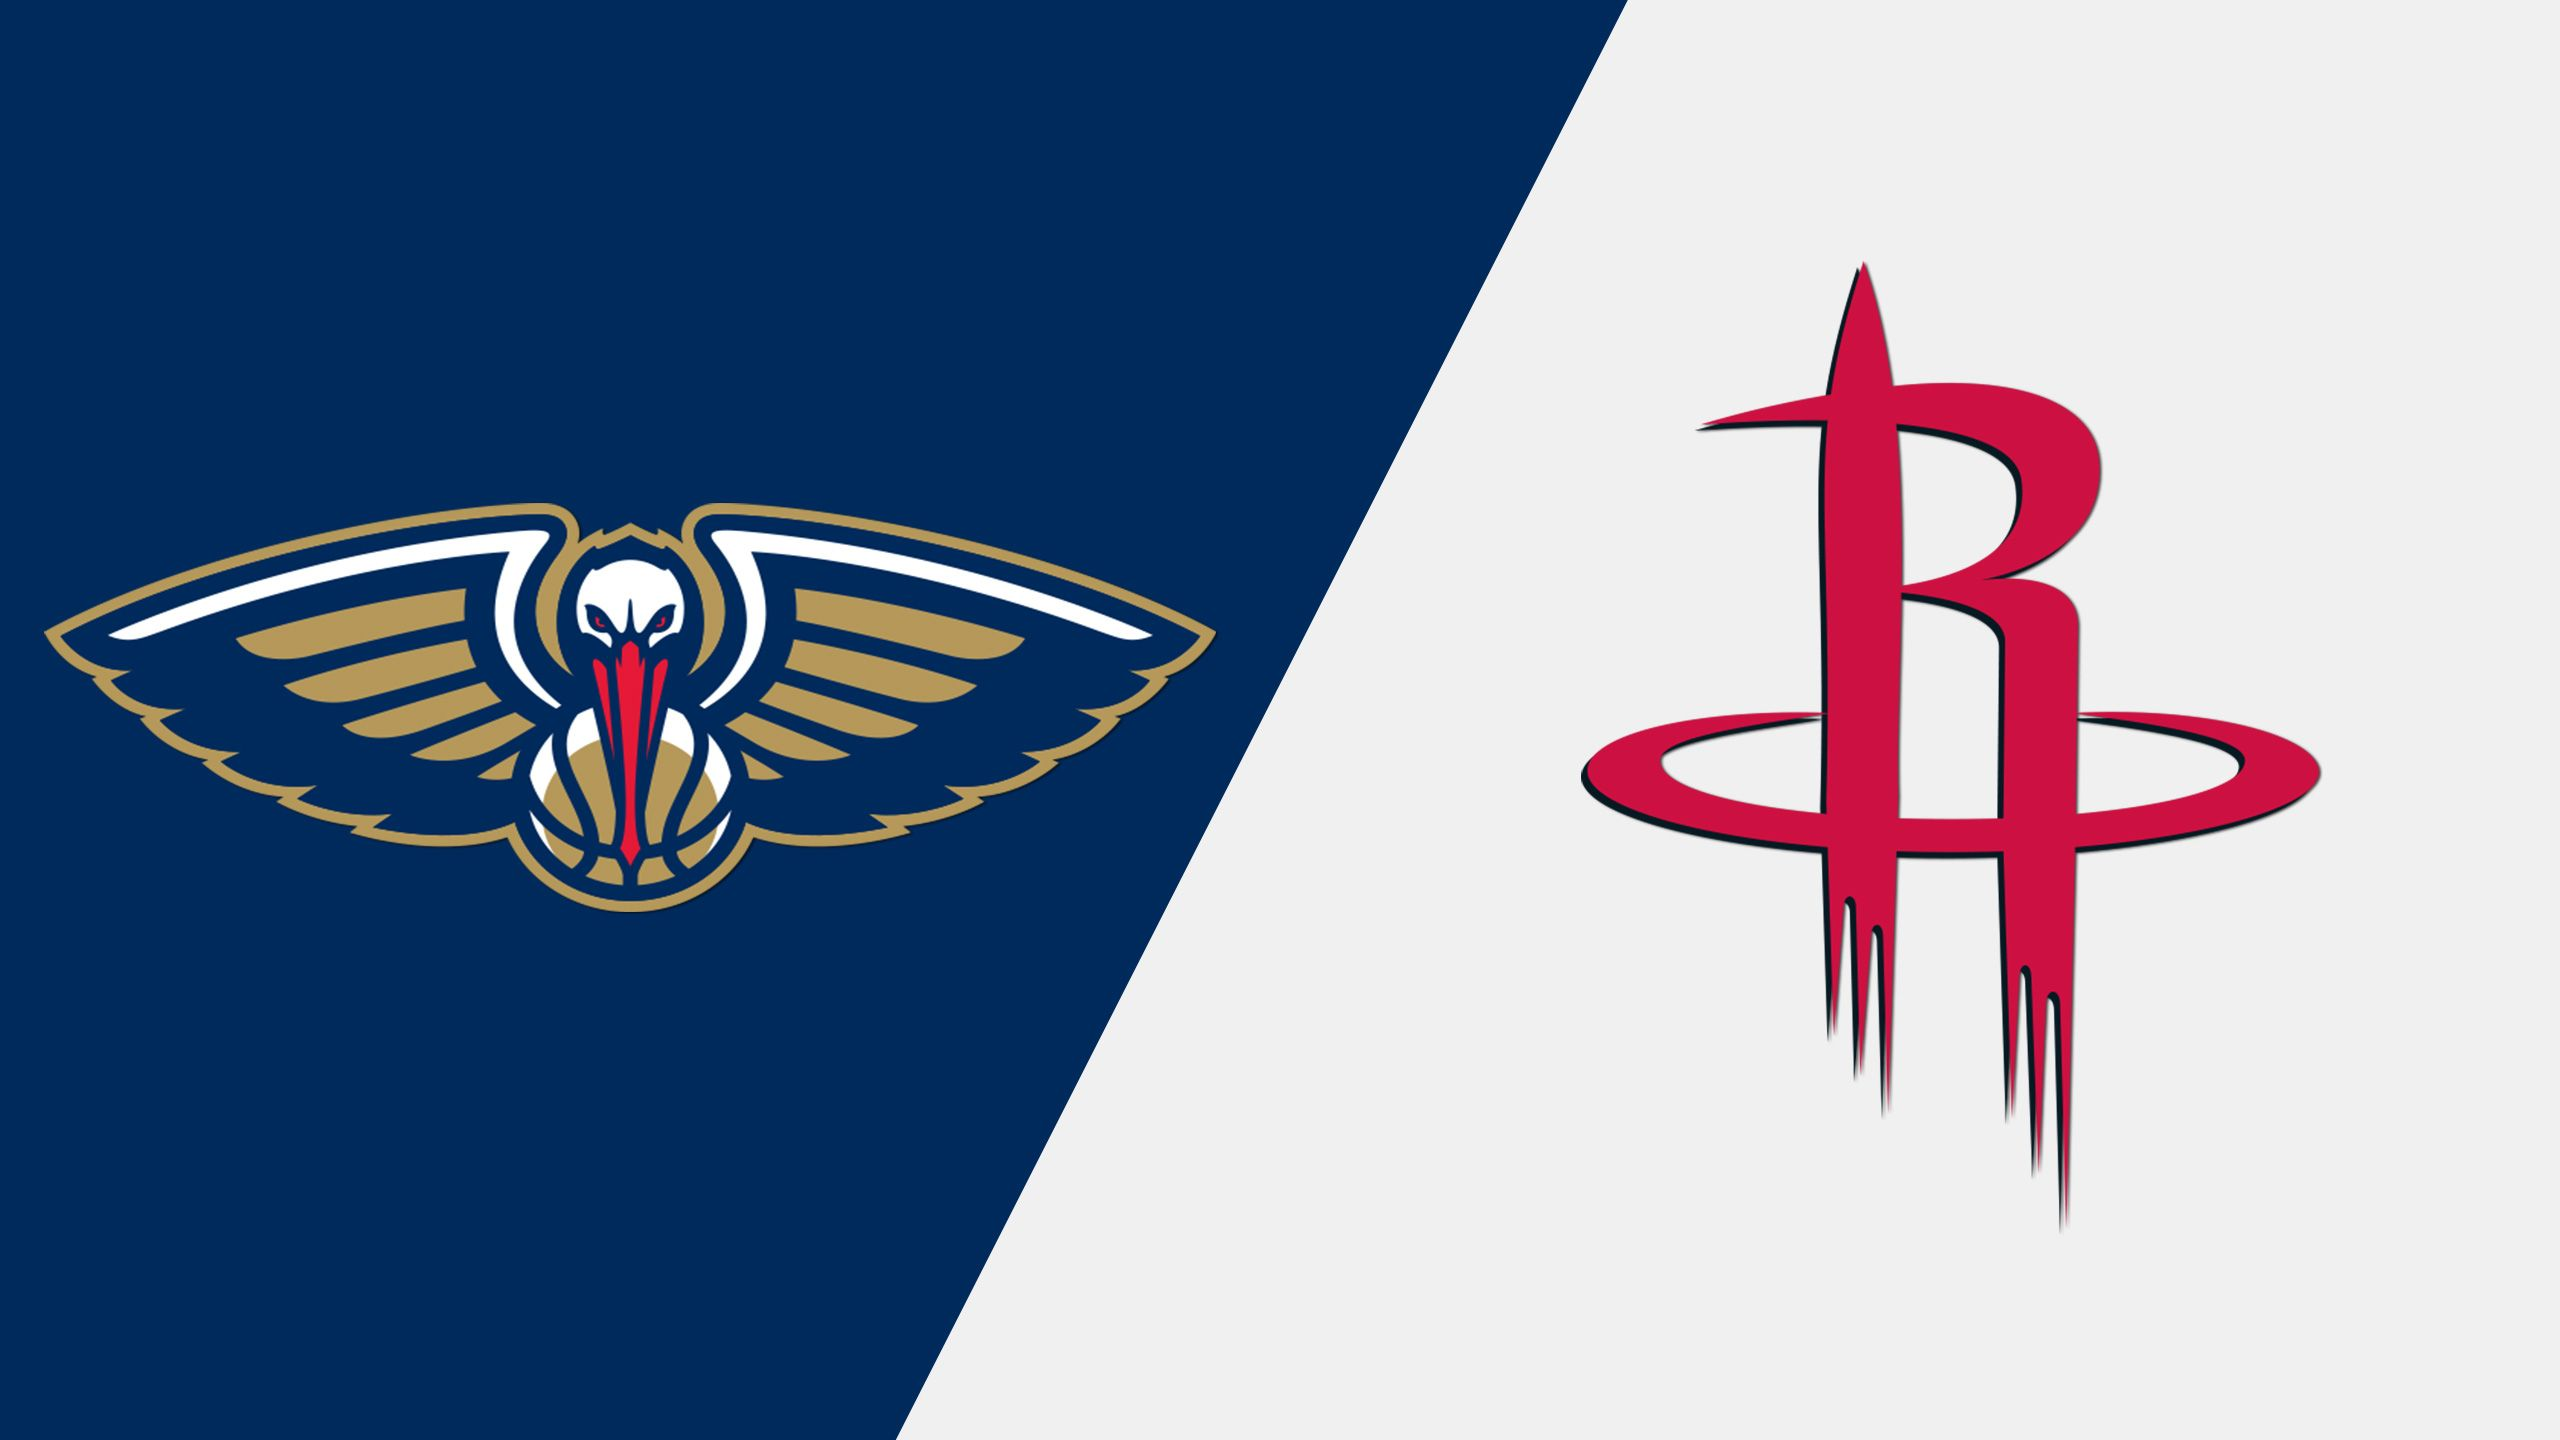 New Orleans Pelicans vs. Houston Rockets